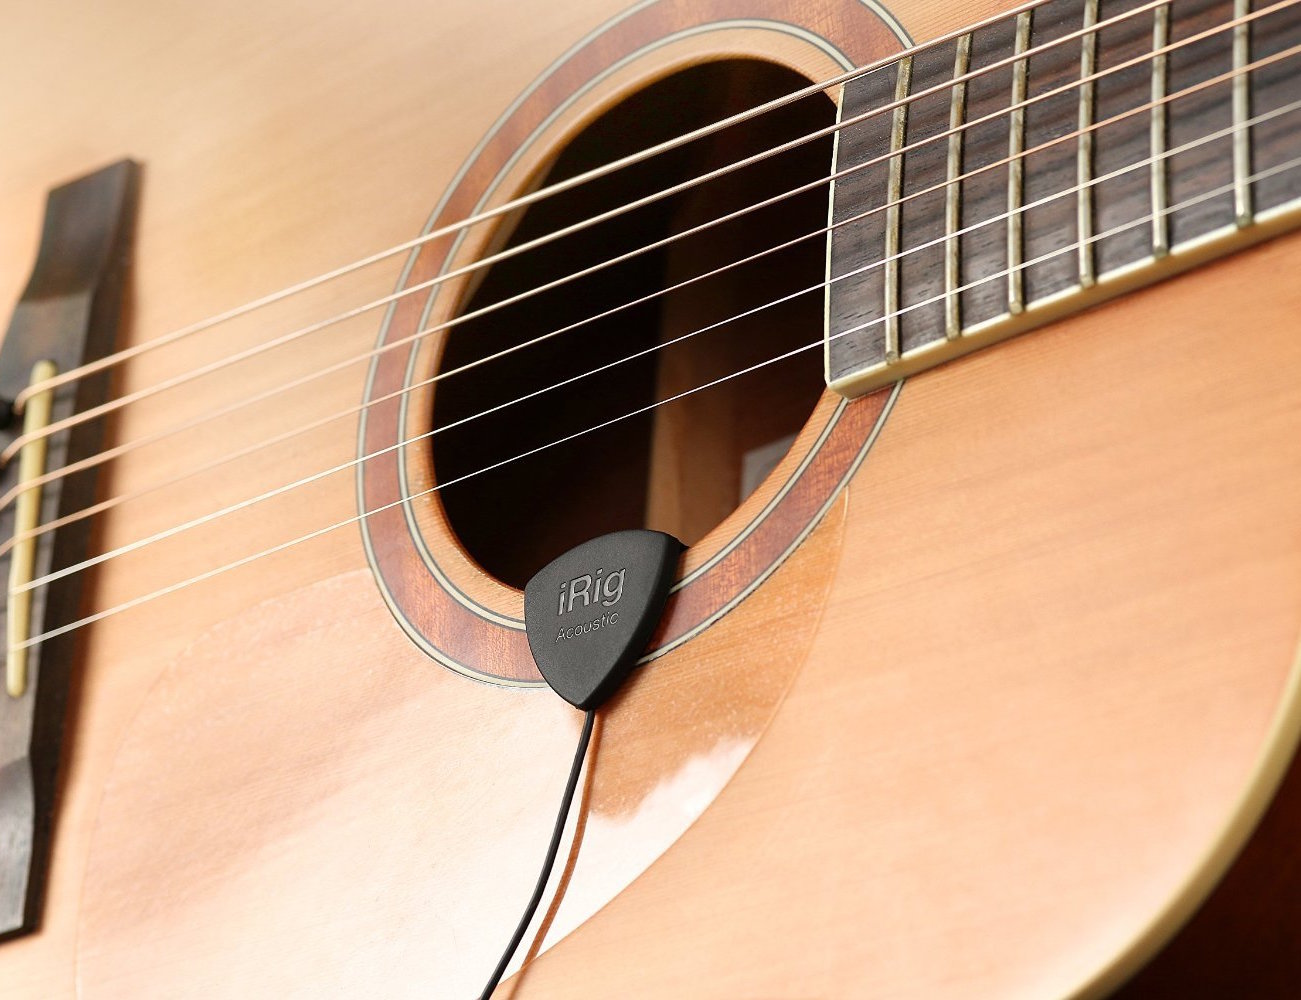 iRig Acoustic Guitar Microphone